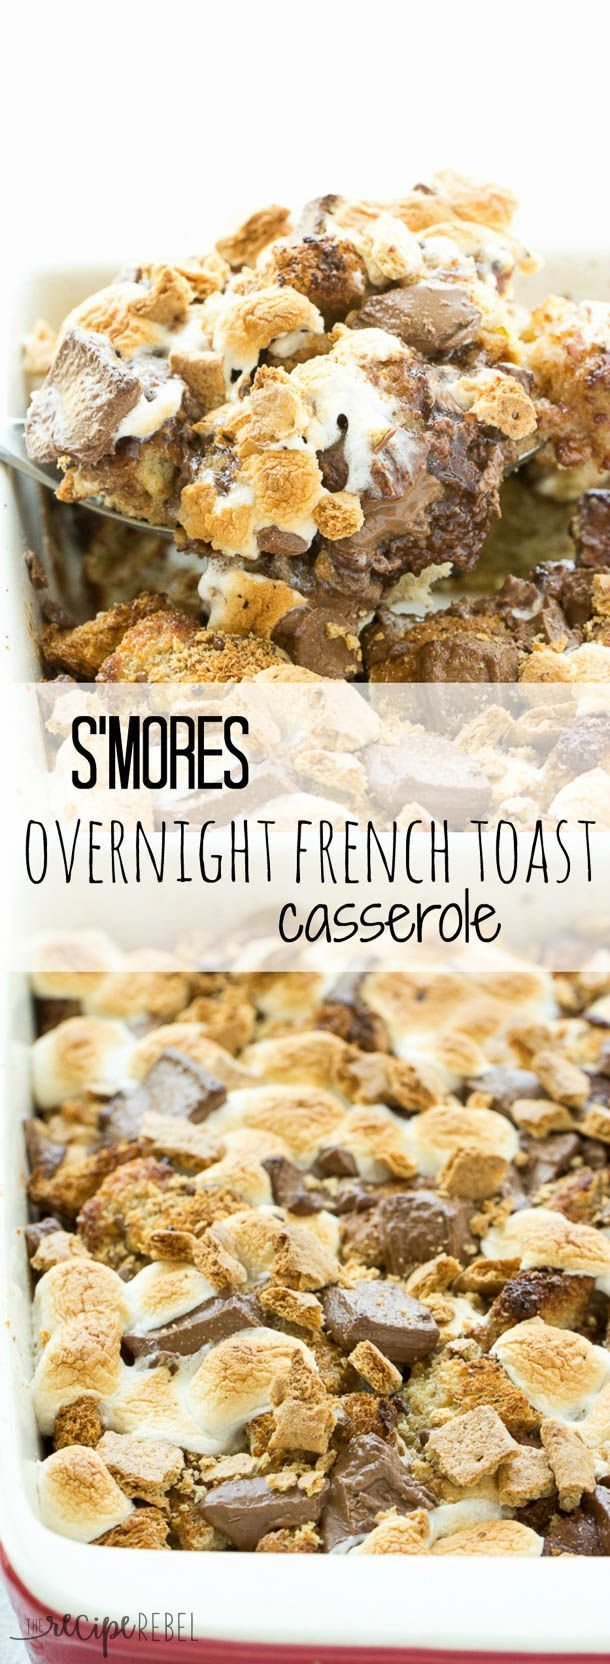 S'mores Overnight French Toast Casserole: An easy, overnight french toast casserole is topped with marshmallows, chocolate chunks and graham crackers and baked until irresistibly gooey -- the perfect breakfast, brunch or brinner to take you from summer ri